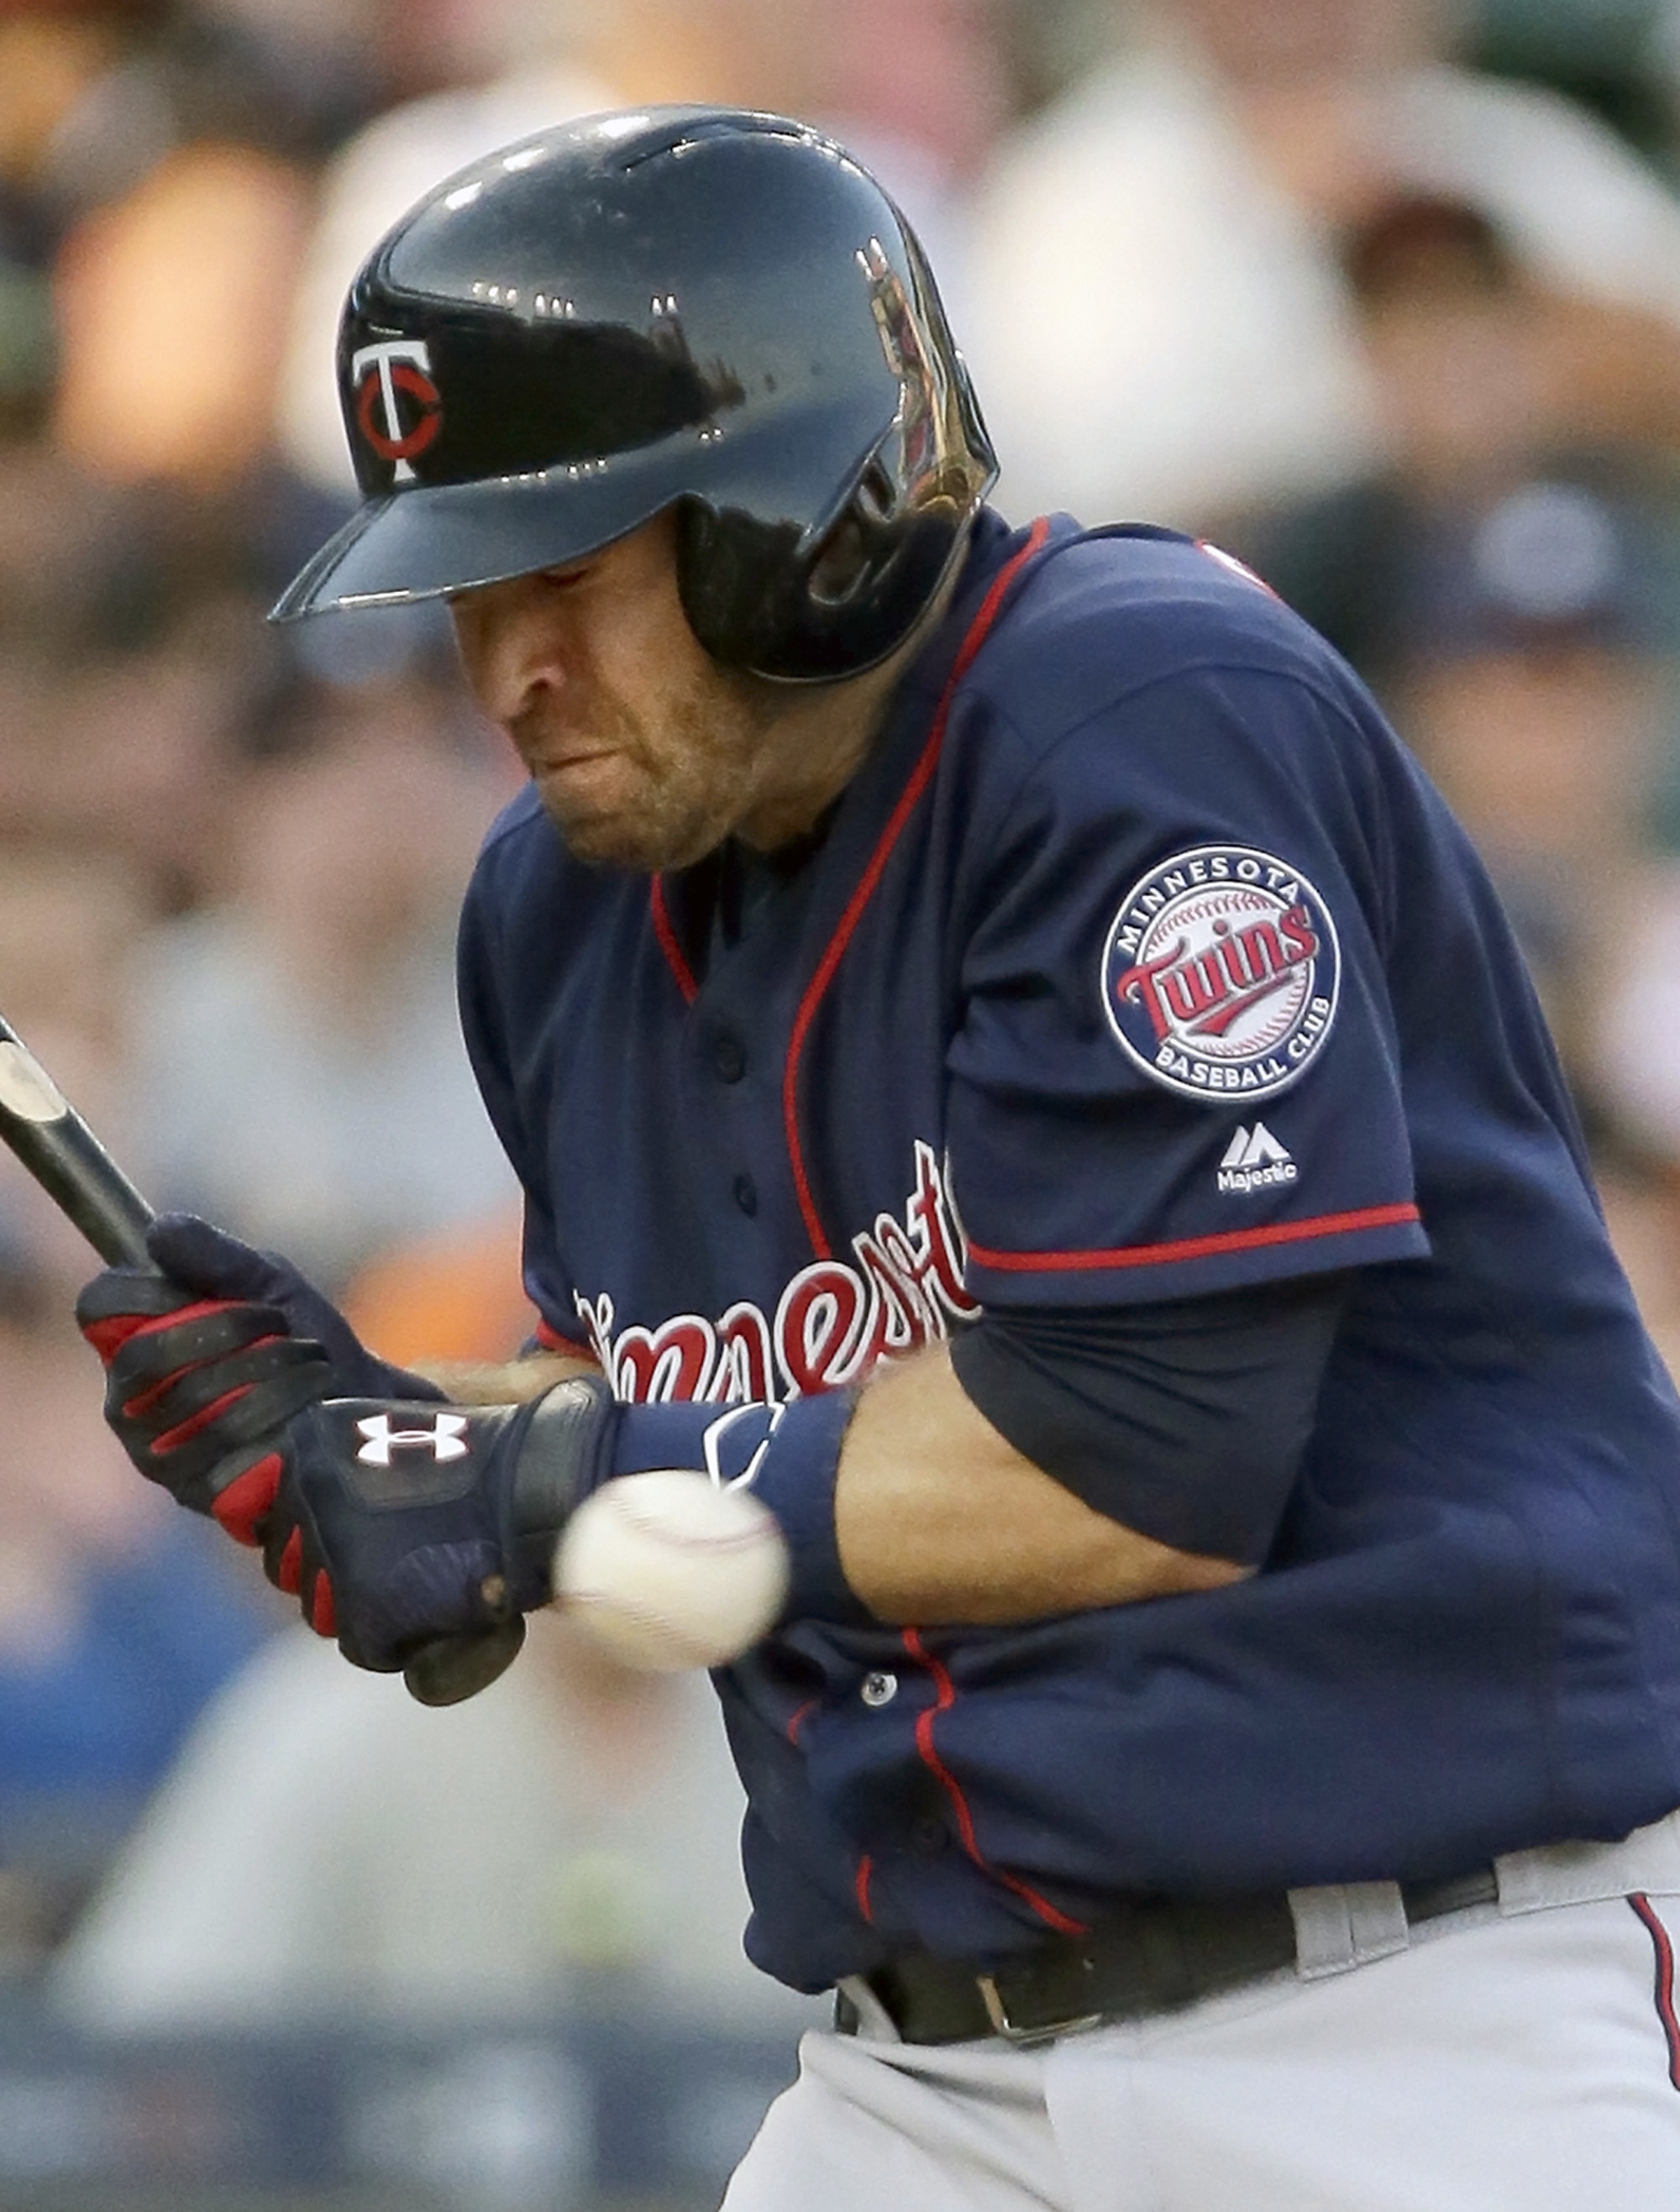 Minnesota Twins' Brian Dozier avoids an inside pitch during the fourth inning of a baseball game against the Detroit Tigers, Monday, July 18, 2016, in Detroit. (AP Photo/Duane Burleson)